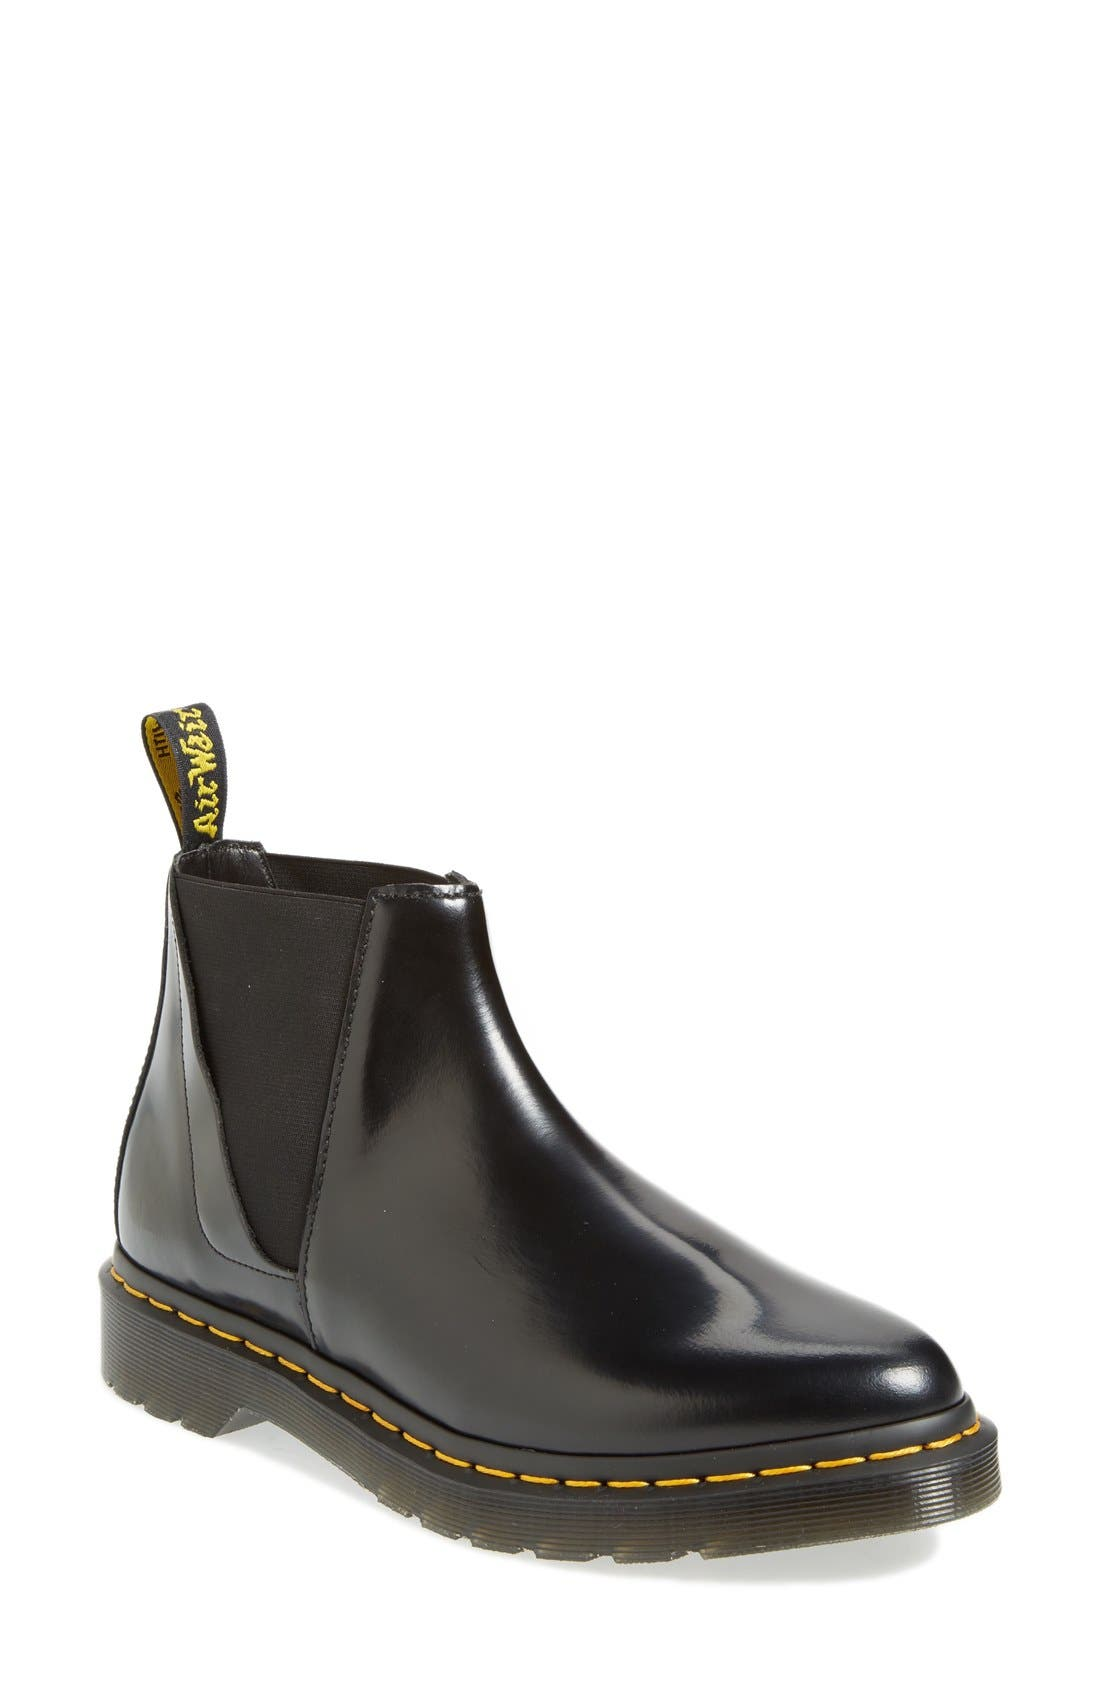 Alternate Image 1 Selected - Dr. Martens 'Bianca' Chelsea Boot (Women)